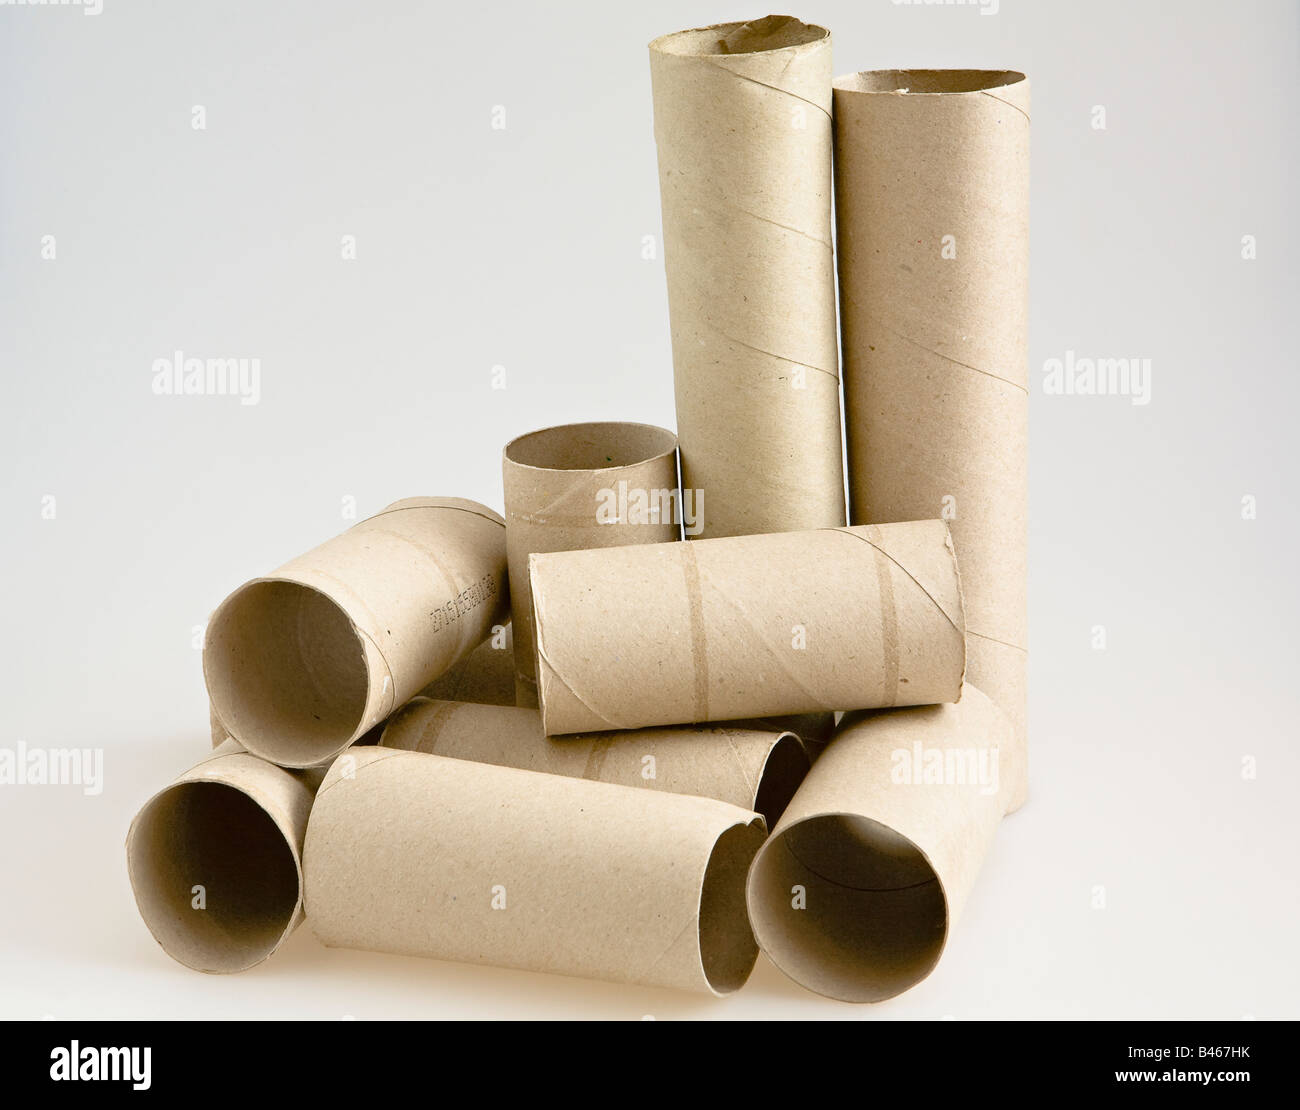 Cardboard toilet and kitchen towel roll innards Stock Photo ...